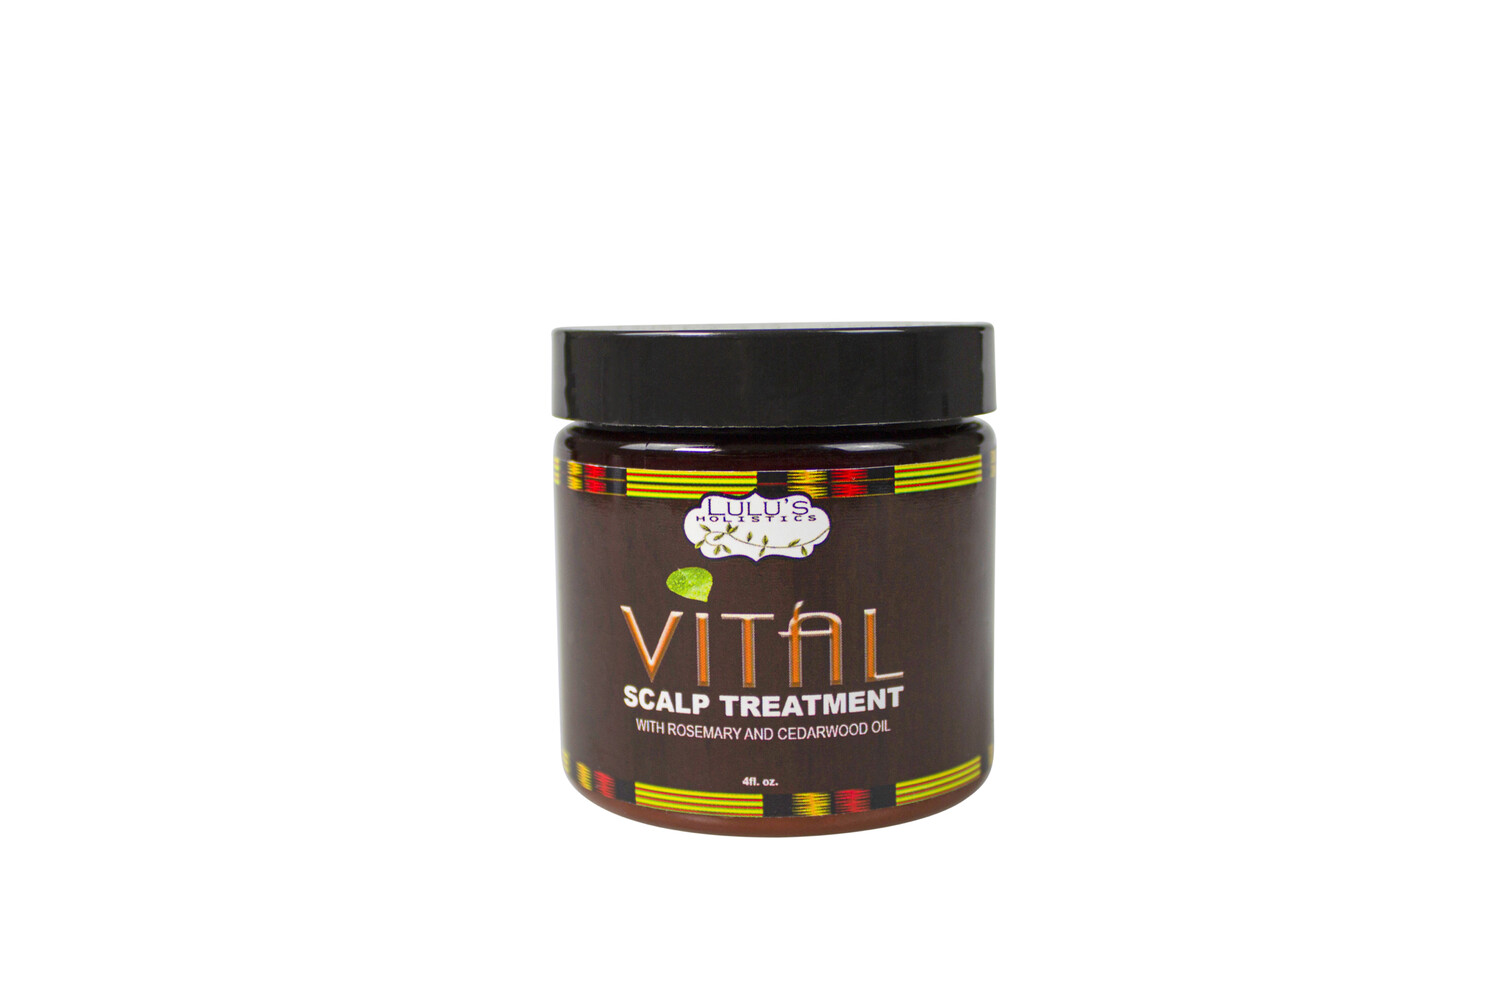 VITAL SCALP TREATMENT